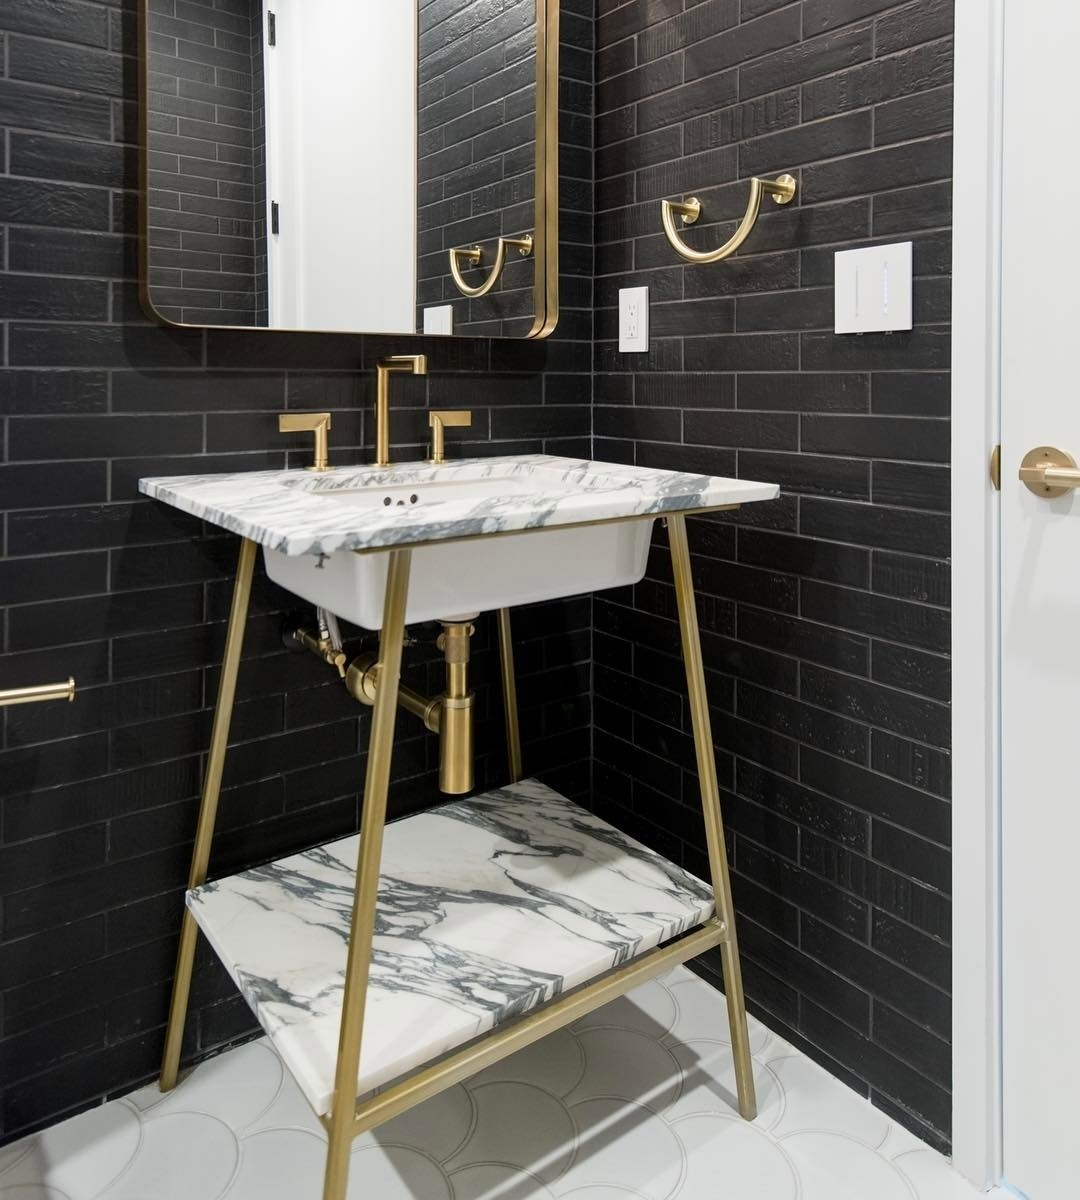 Custom designed powder bath vanity in our Seaholm build.    Designed by @slicdesign  Built by @foursquarebuilders  Photo by @redpantsstudio